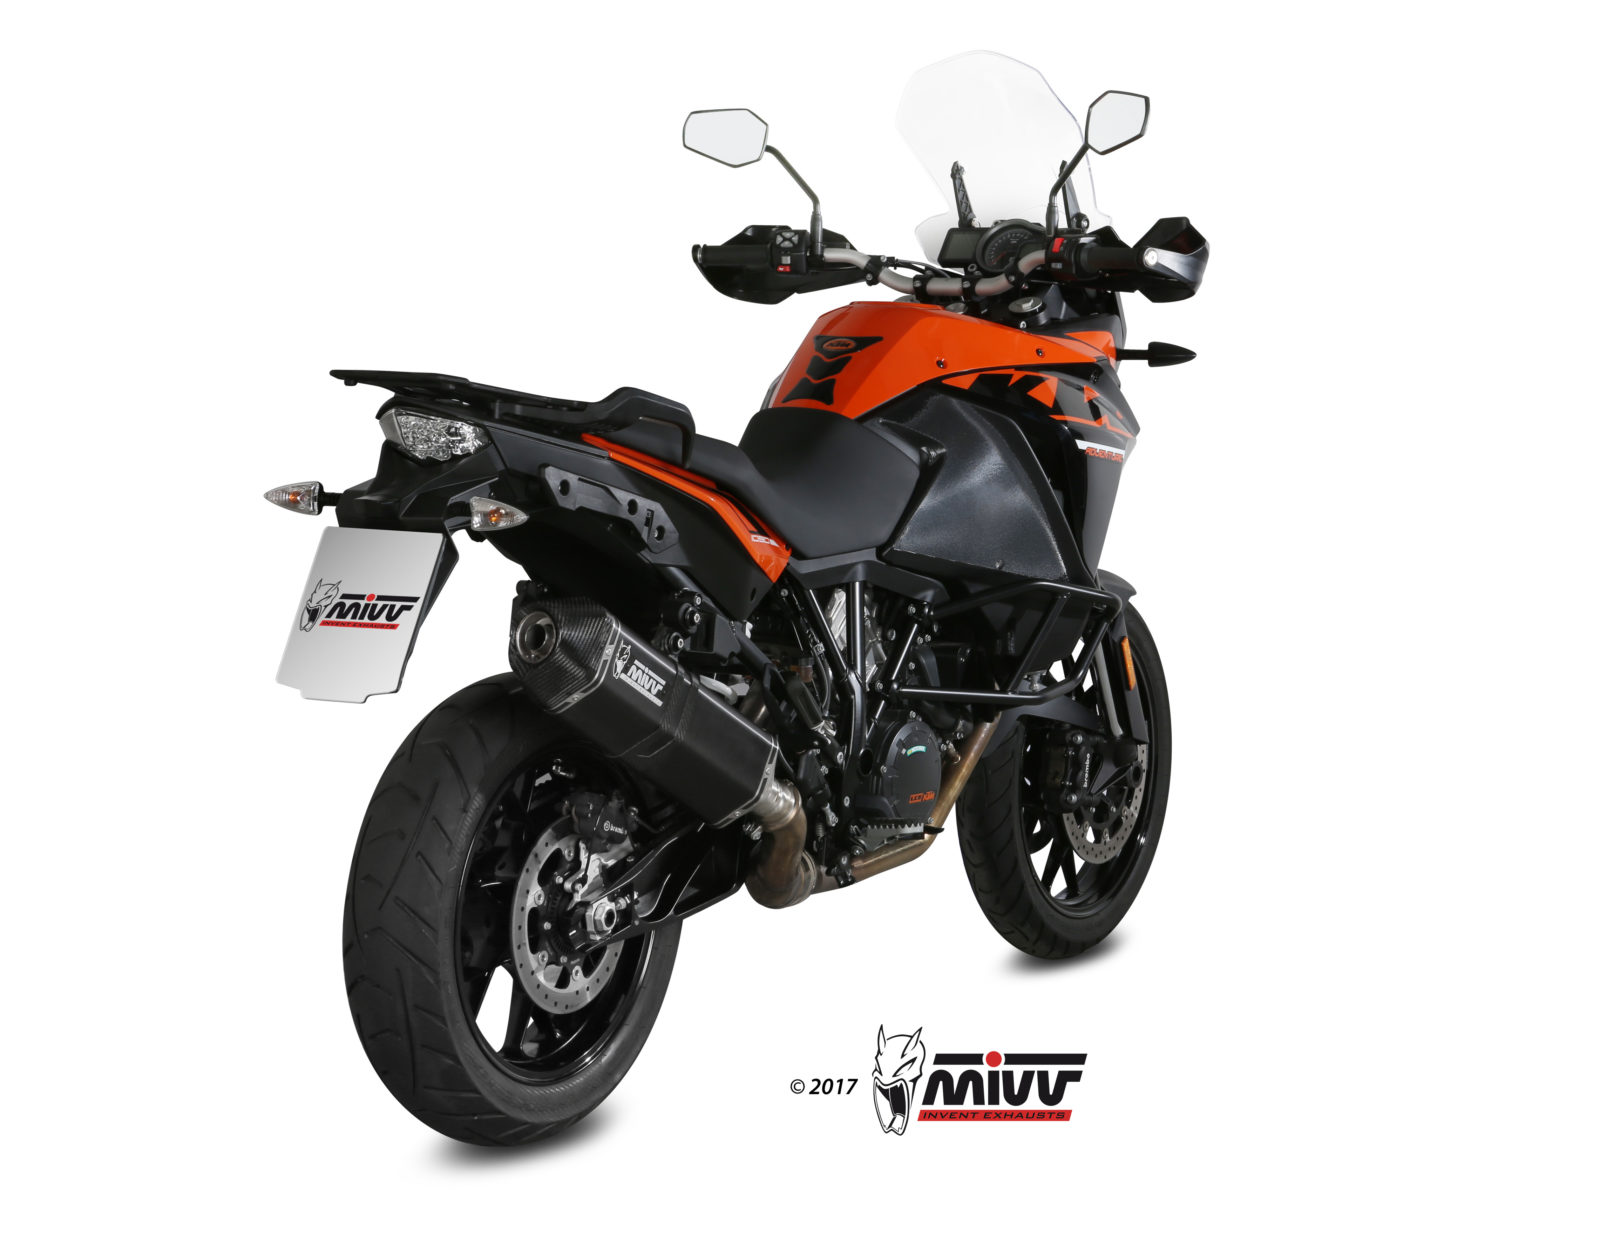 Top Speed Of A Ktm